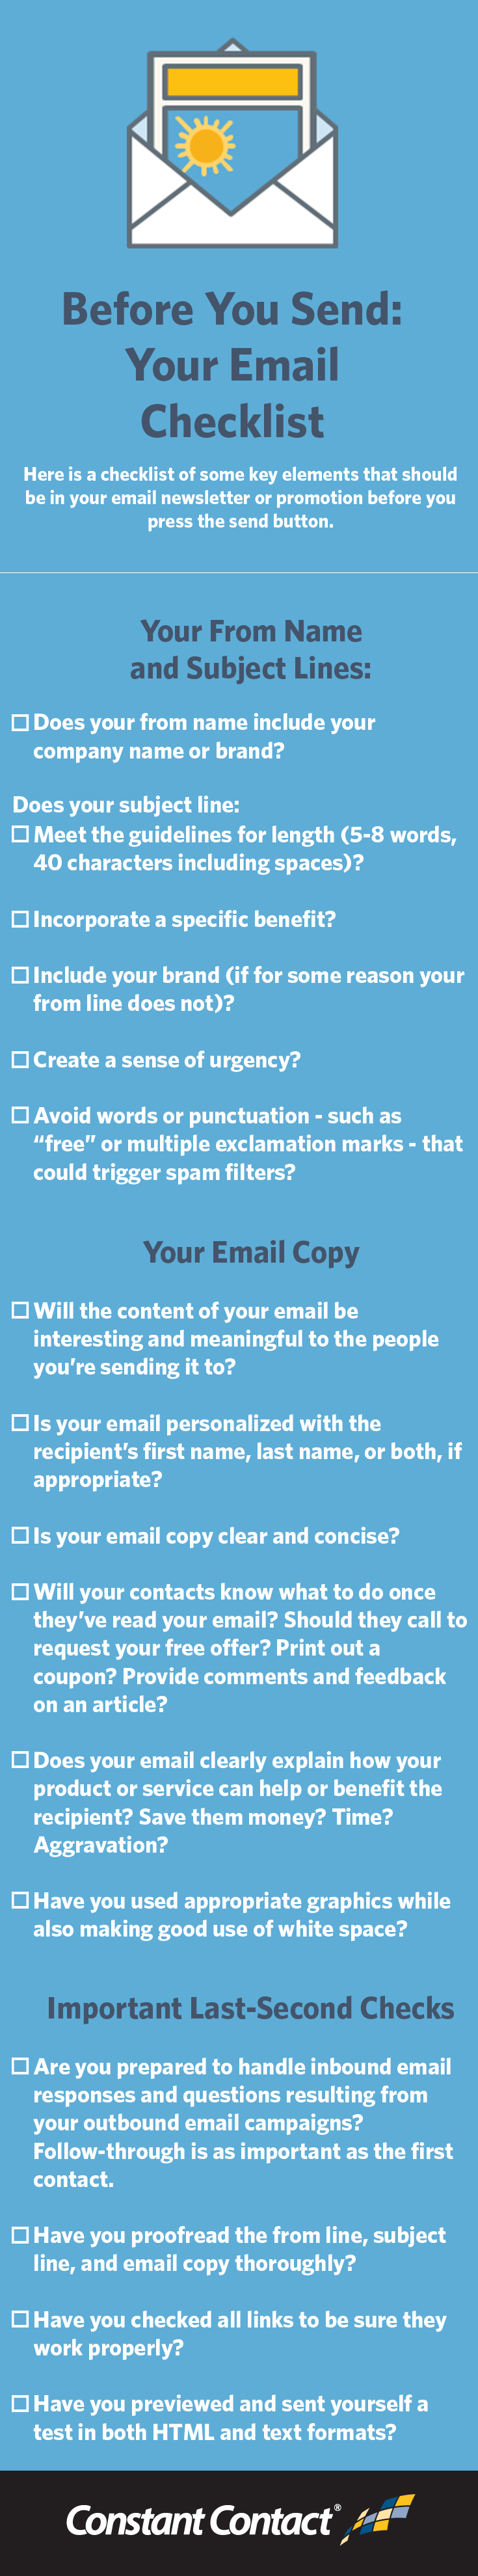 Email Checklist final